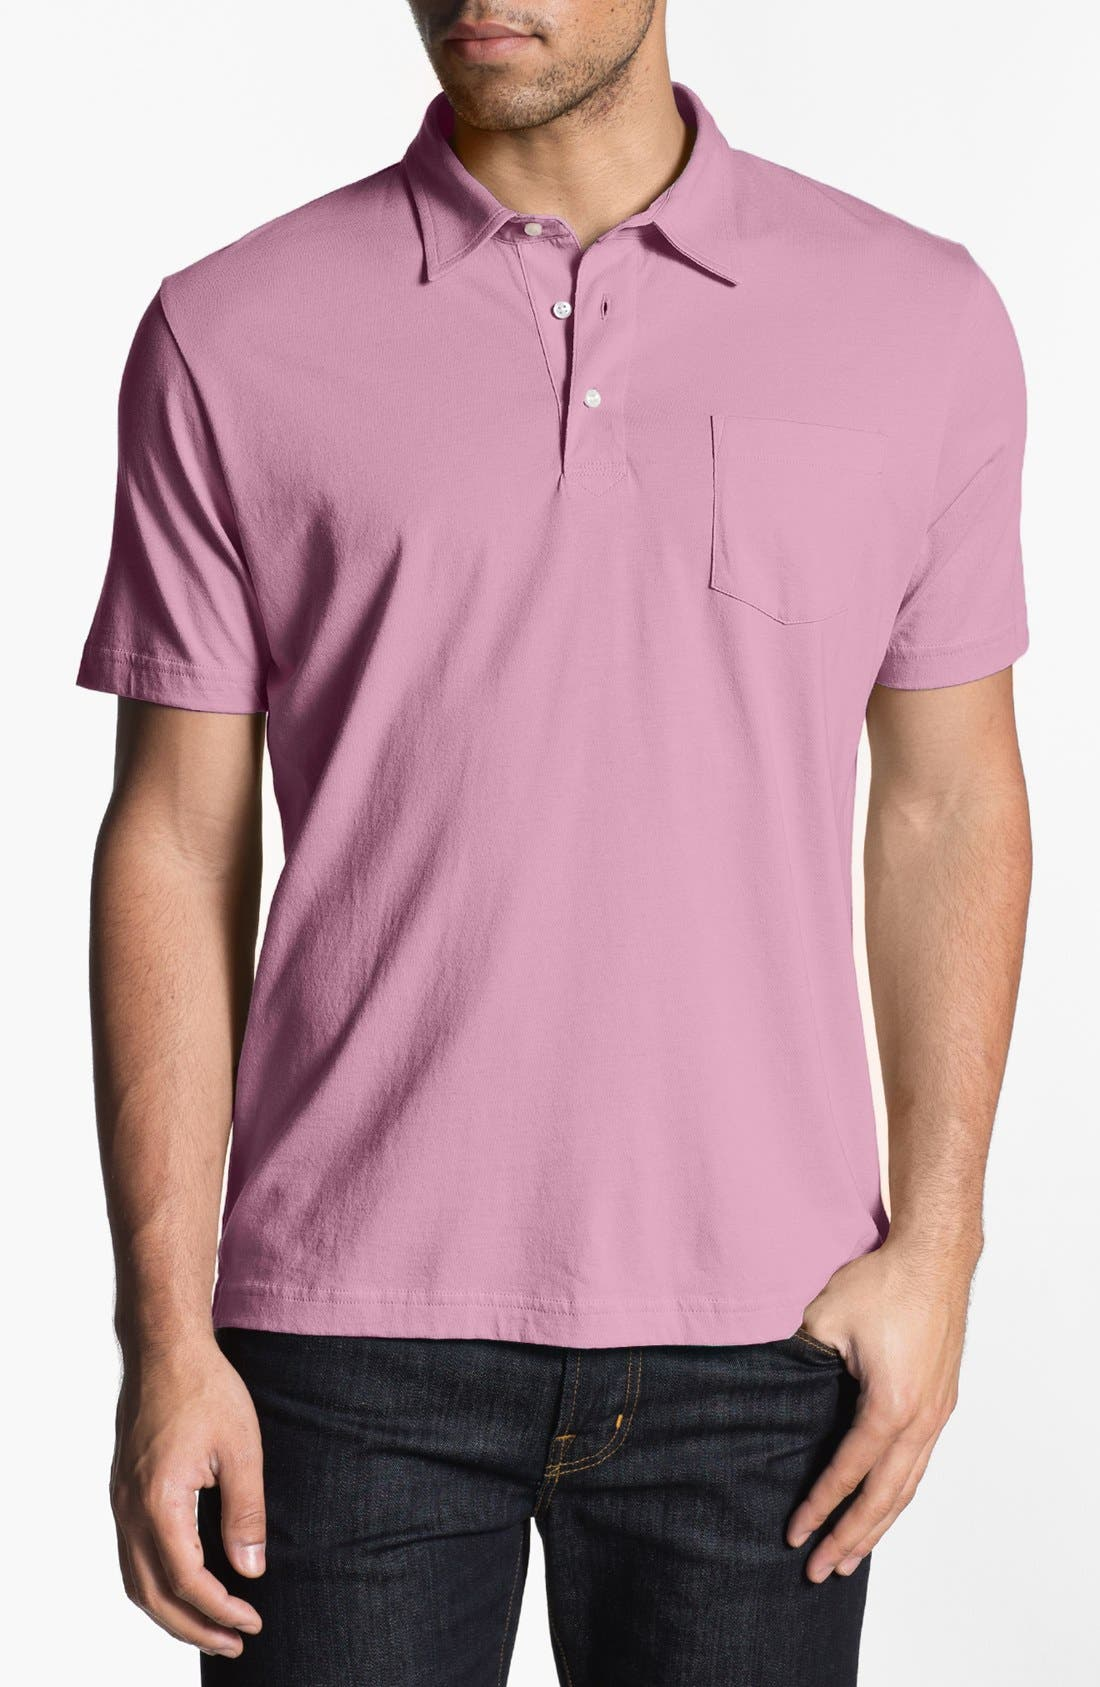 Main Image - Peter Millar Taylor Fit Vintage Wash Jersey Polo